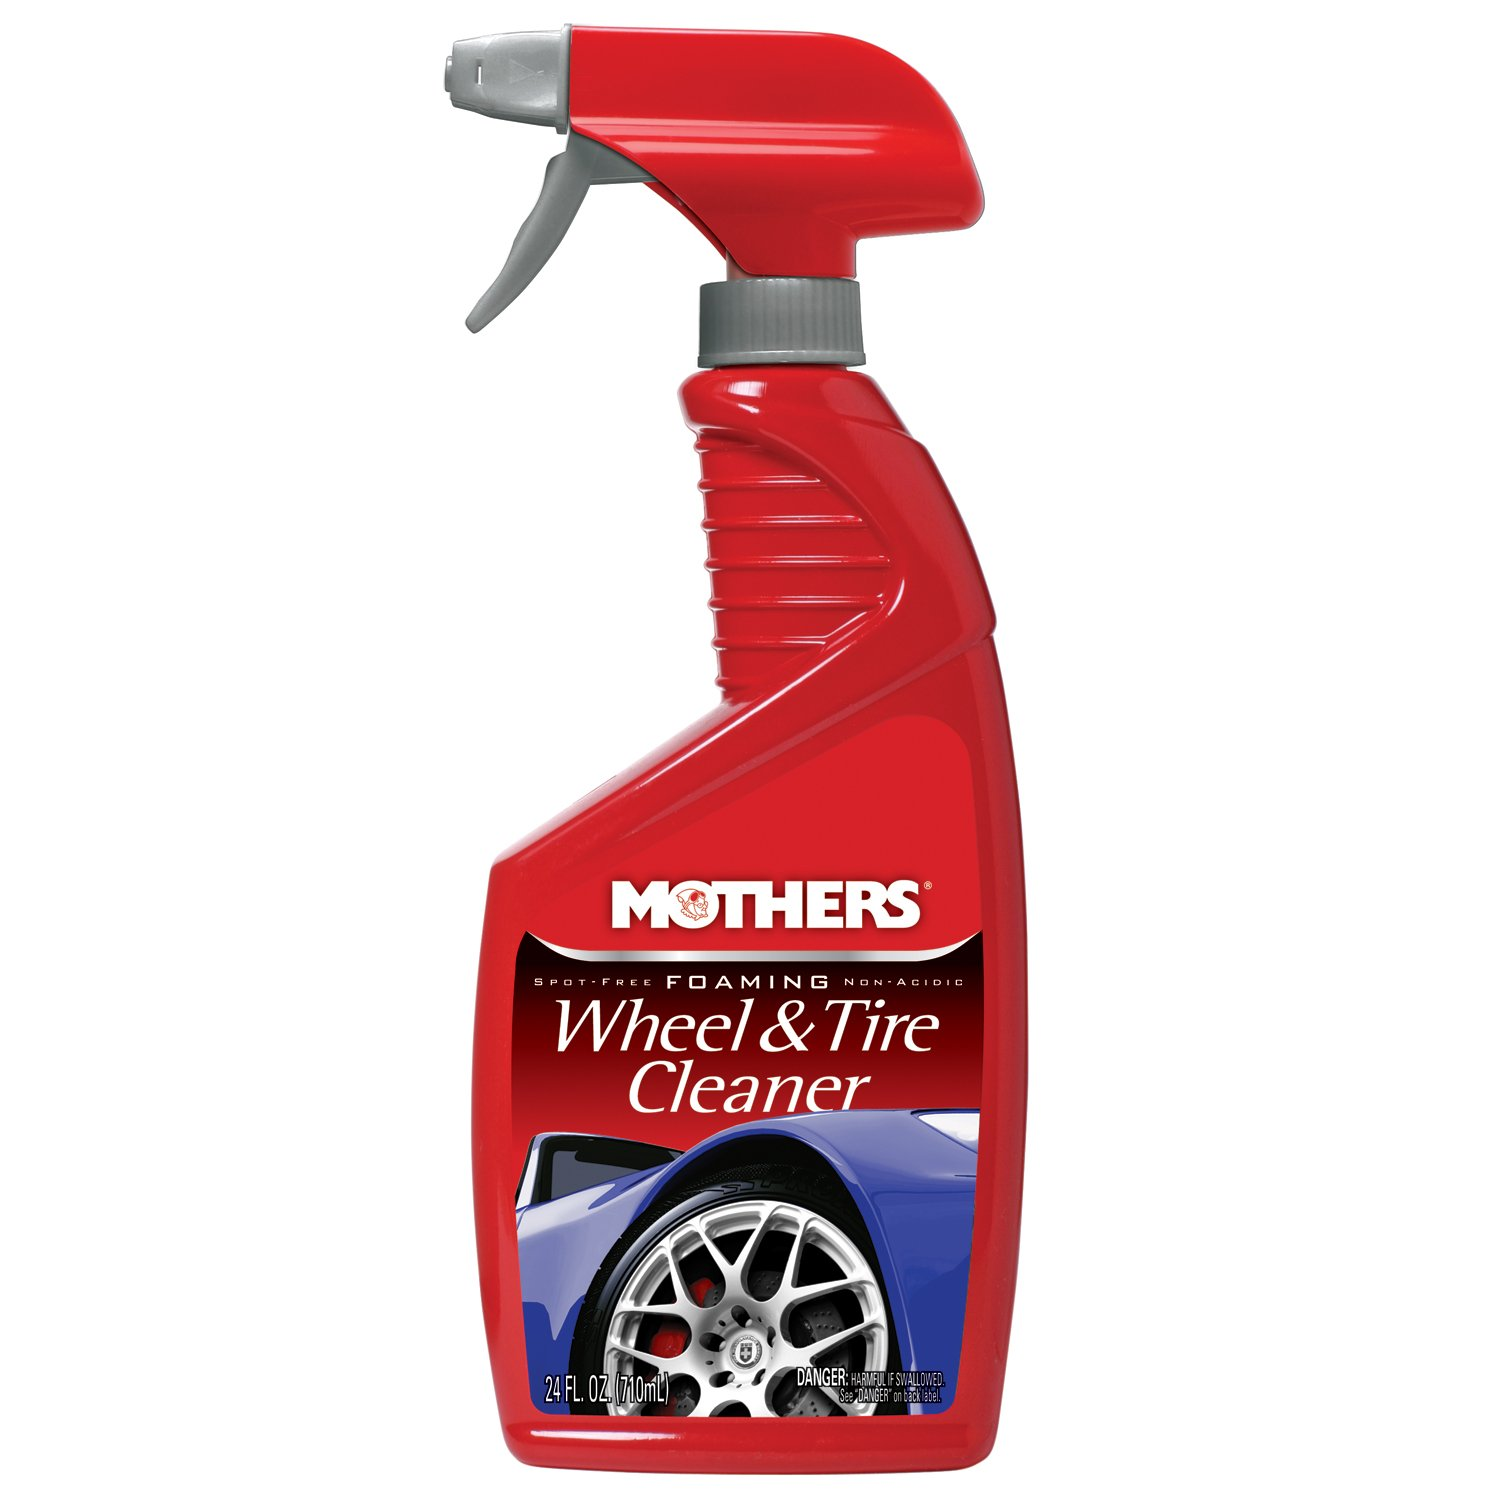 Mothers 05924-6 Foaming Wheel & Tire Cleaner - 24 oz, (Pack of 6)